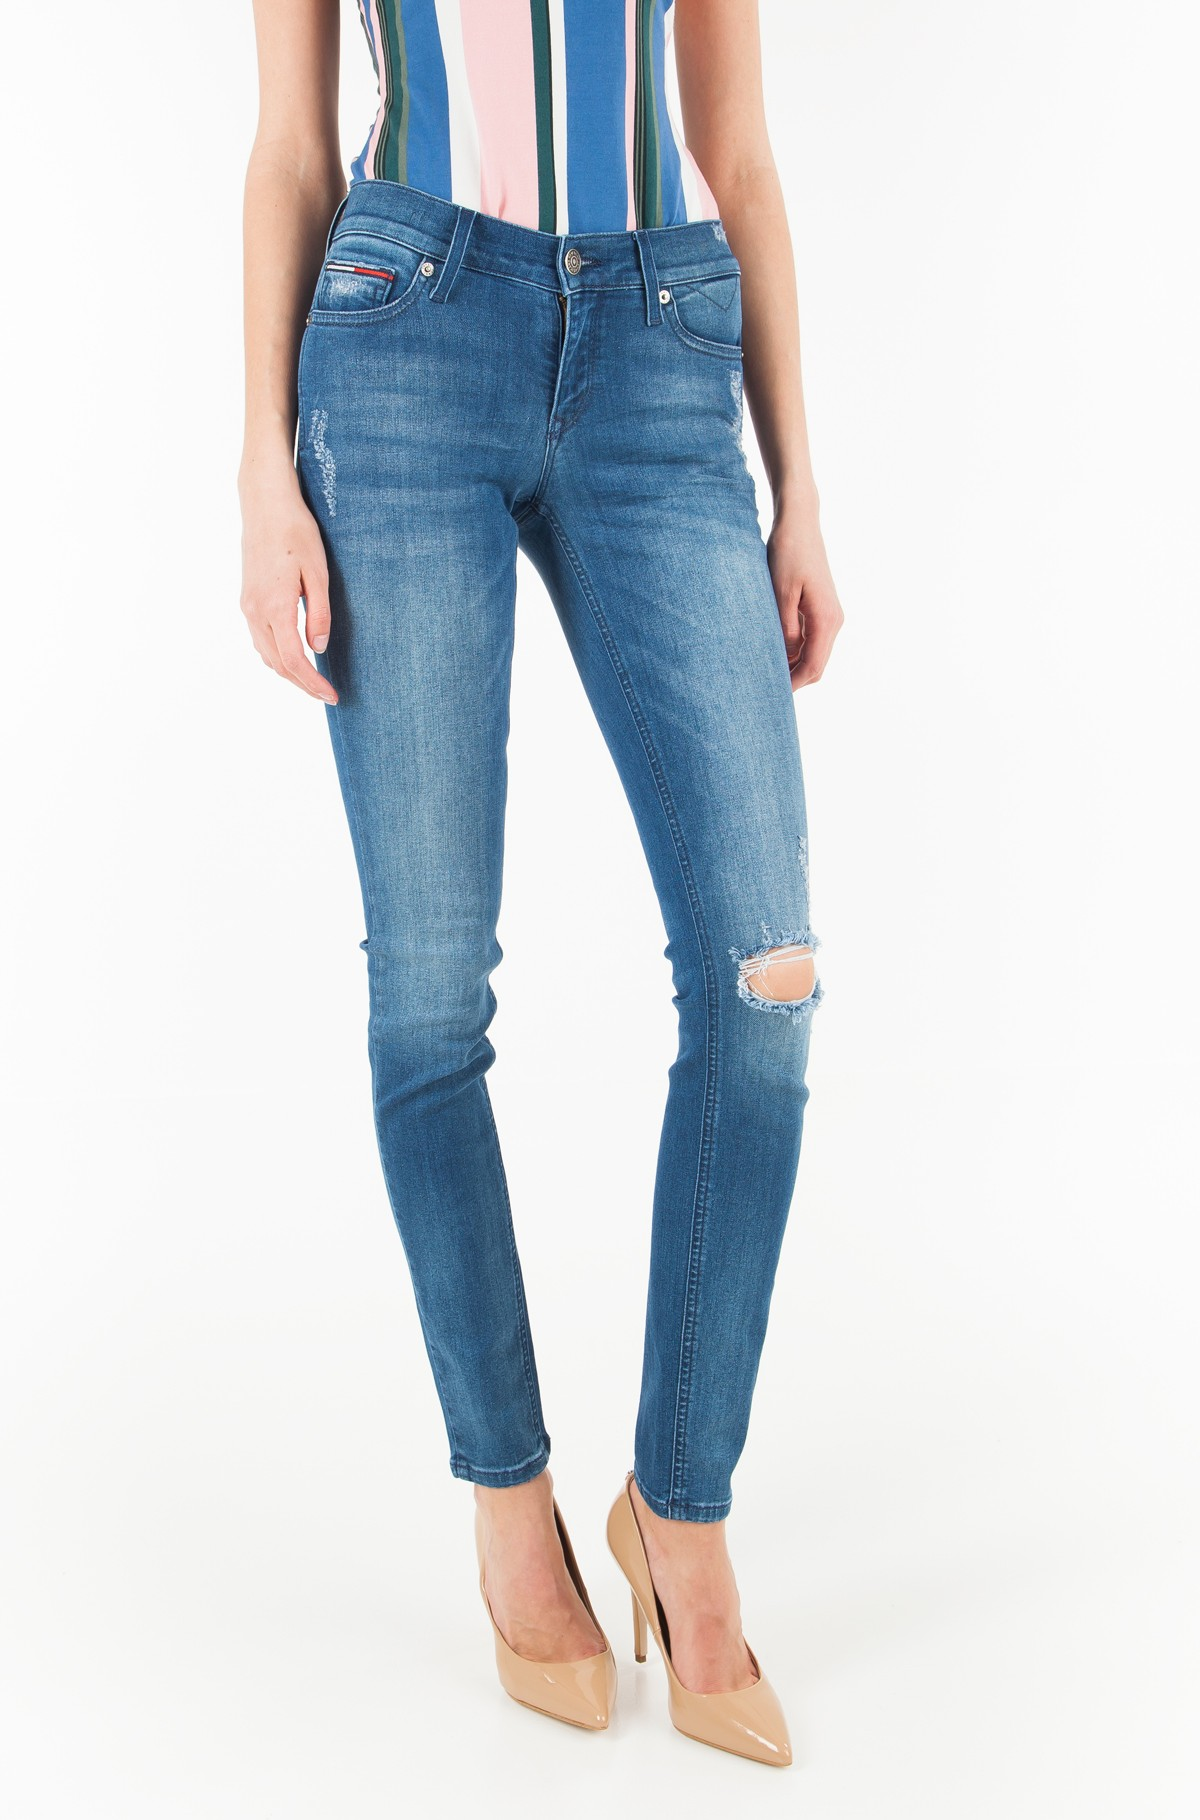 Jeans Mid Rise Skinny Nora Frmbst-full-1